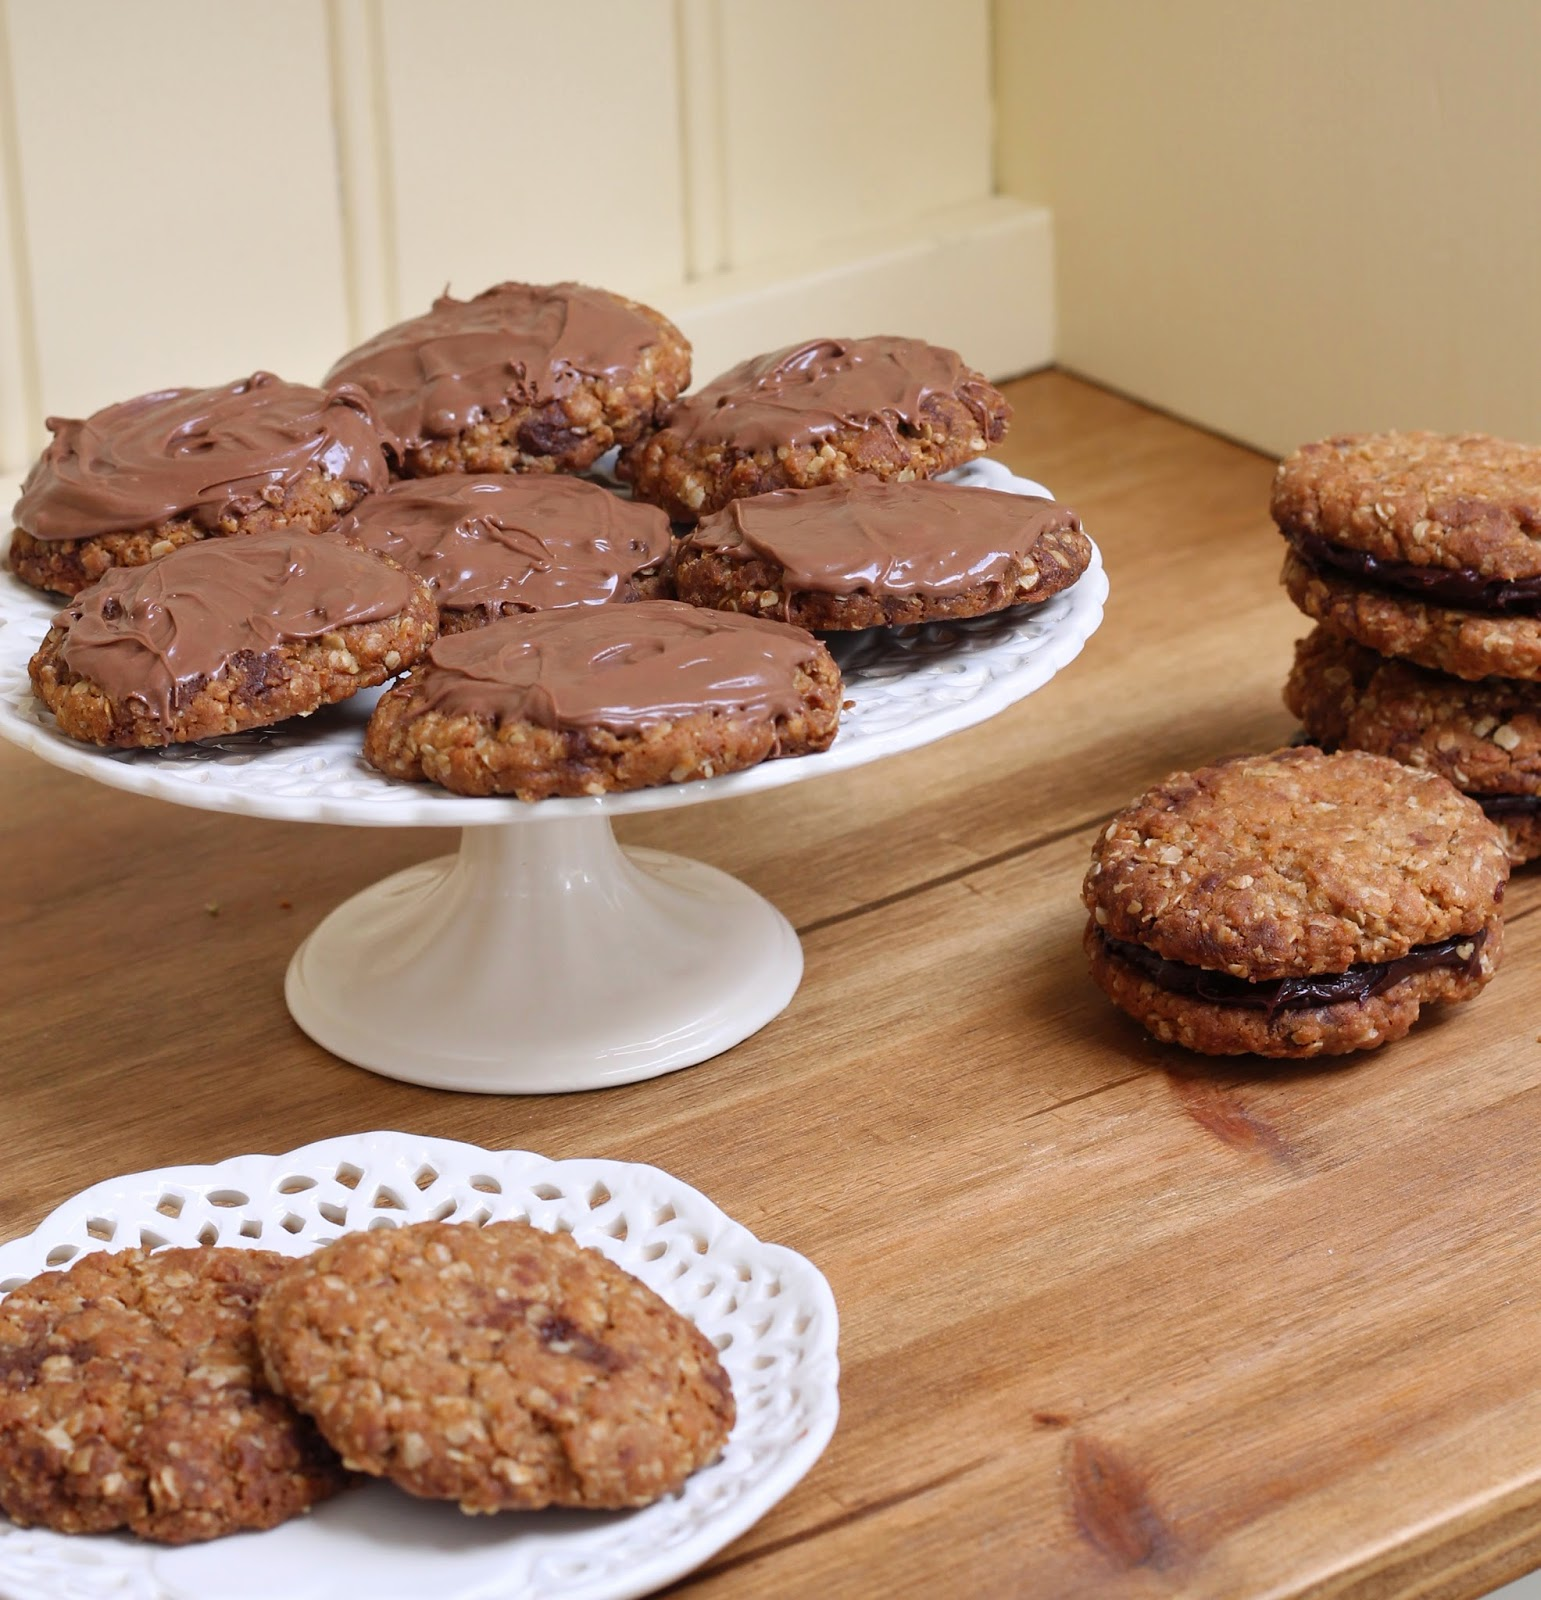 Homemade chocolate hobnobs